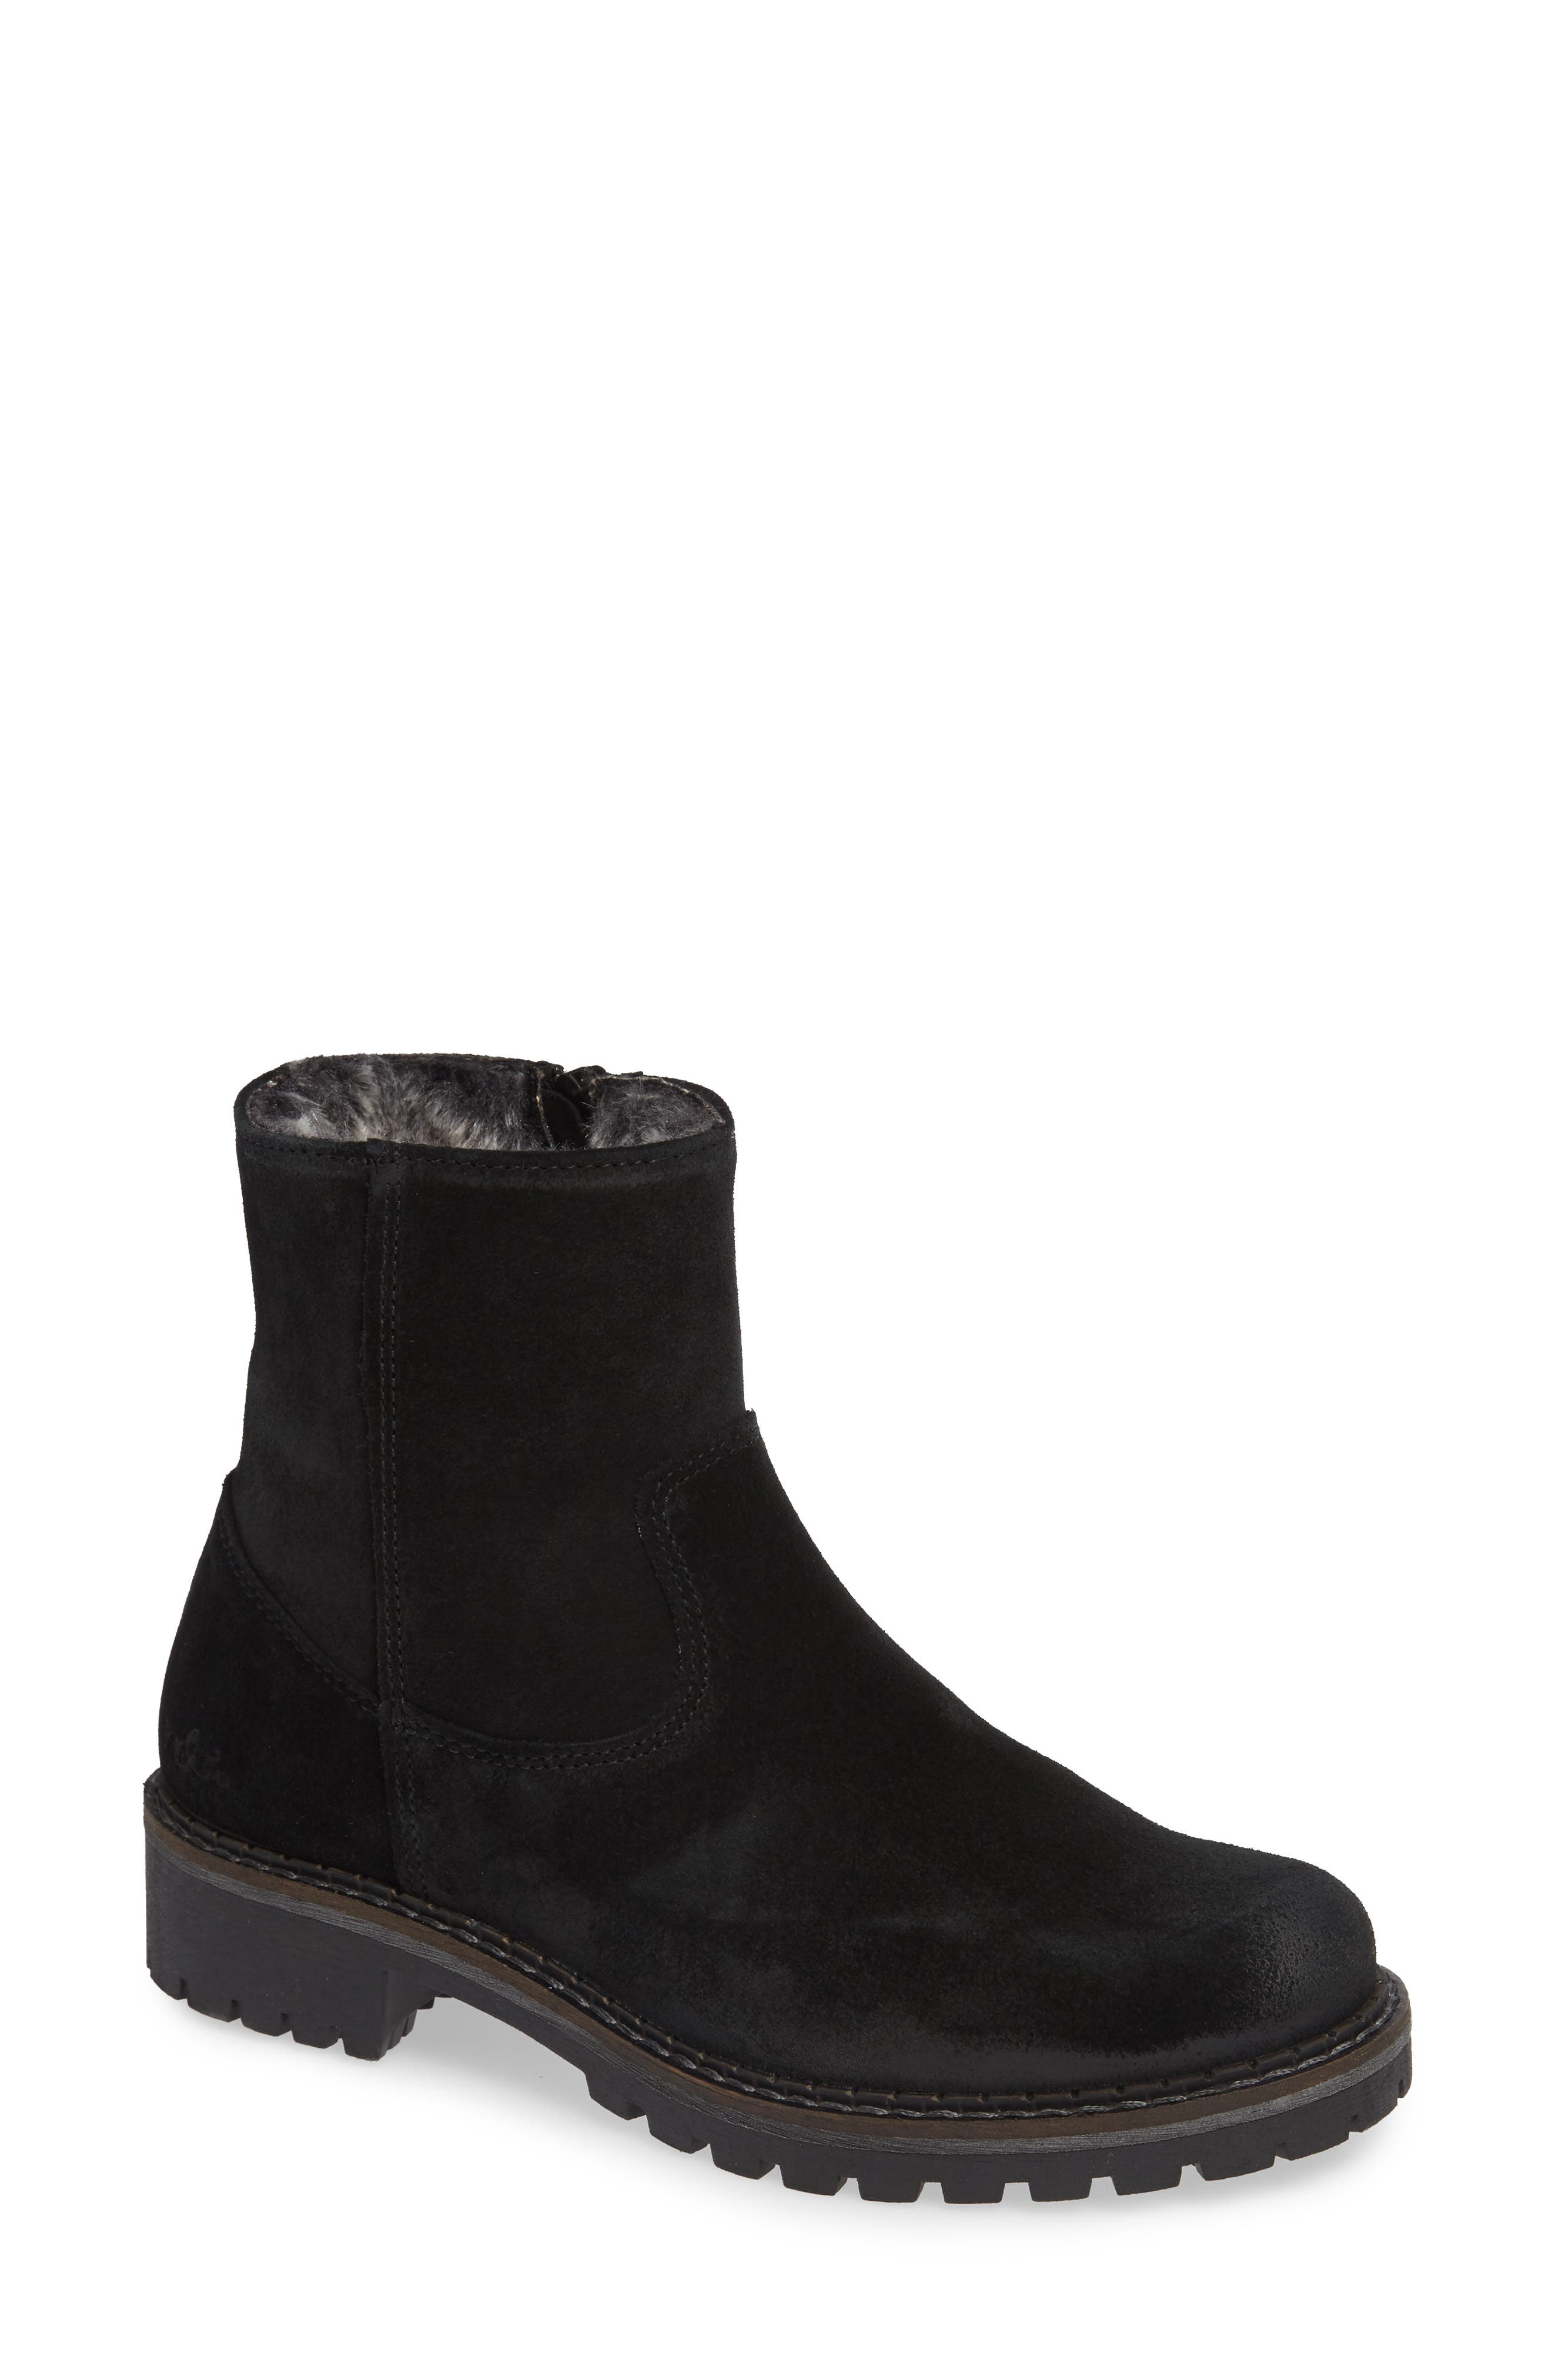 Bos. & Co. Host Faux Fur Lined Boot